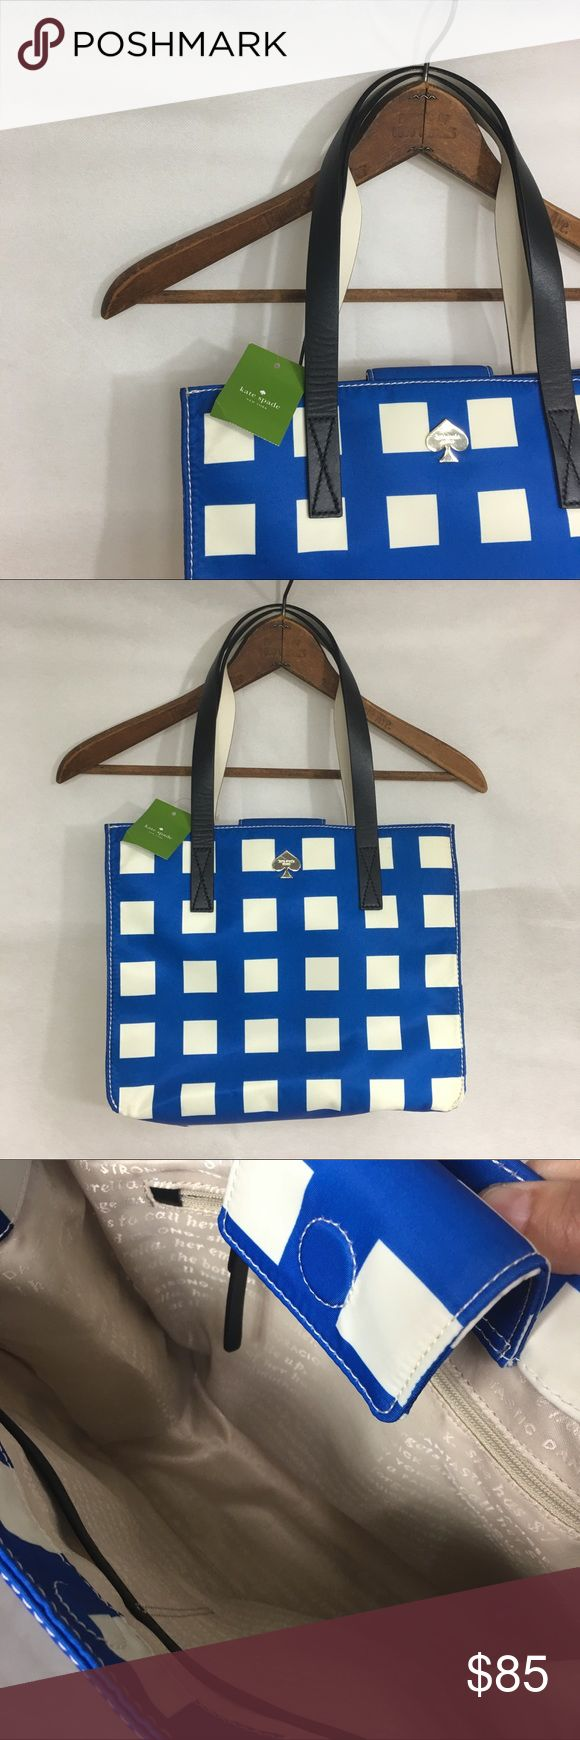 ⬇️🎉LOWEST $ Kate Spade shoulder bag.  Blue white Beautiful new Kate Spade  ♠️ shoulder bag tote in pretty blue and white checkered pattern. kate spade Bags Shoulder Bags